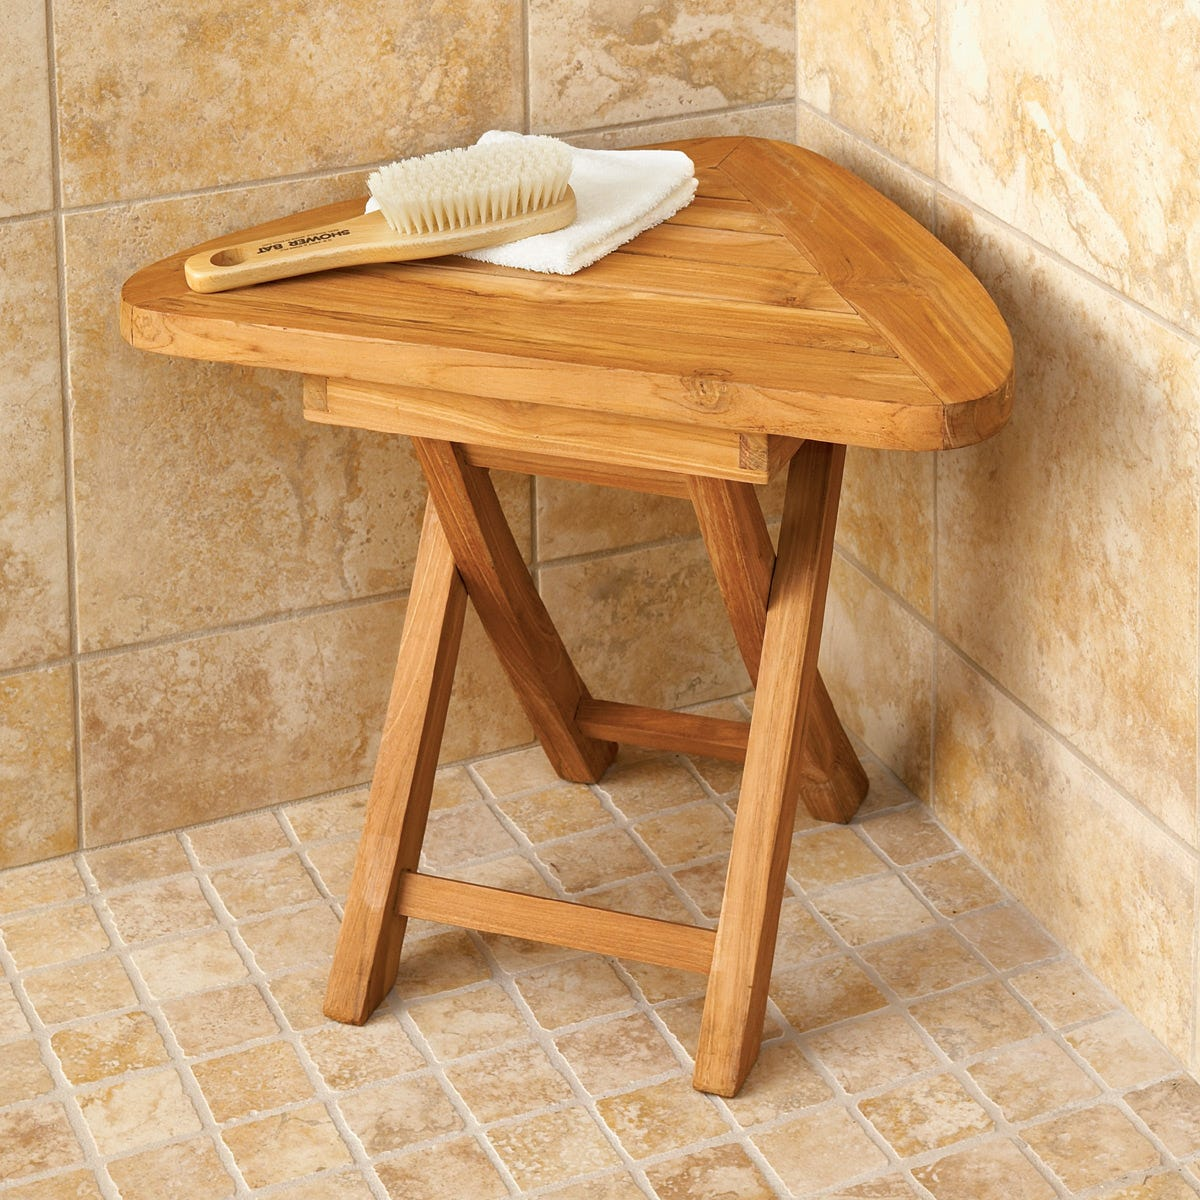 broyhill fold bathroom stool chair down most bench with mat large teak seat storage spa mounted wall transfer benches outdoor small up corner bang shower for